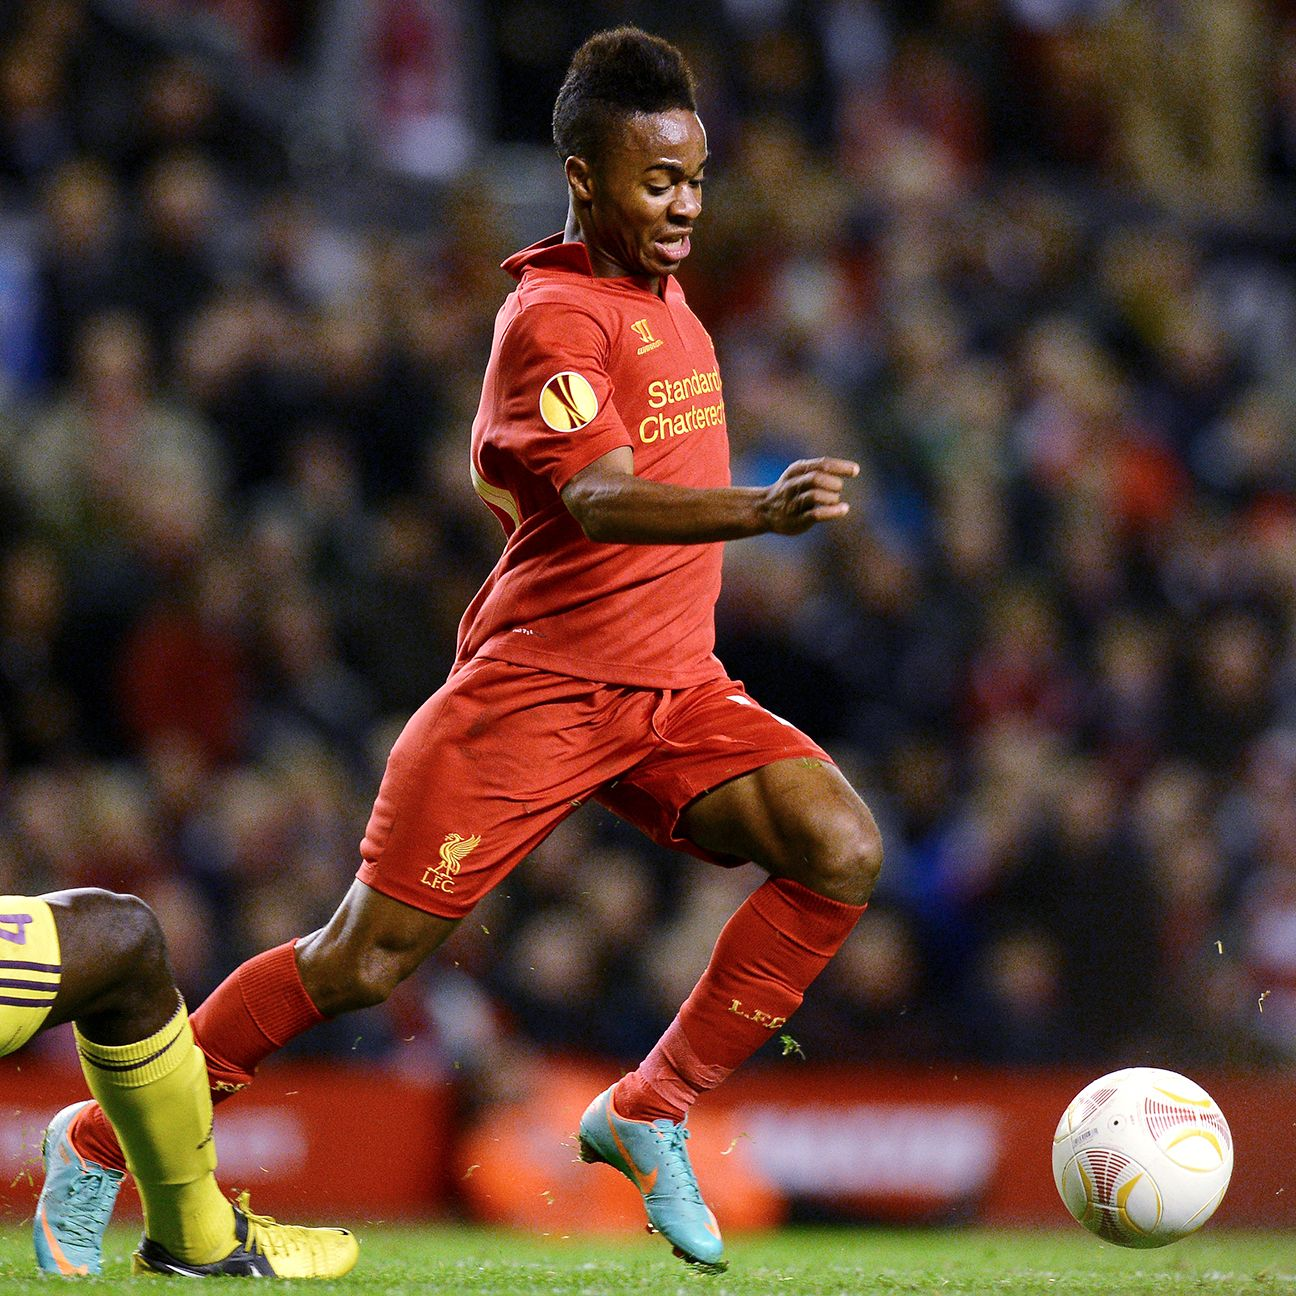 Rodgers used the 2012-13 Europa League to give Raheem Sterling some valuable first-team minutes.